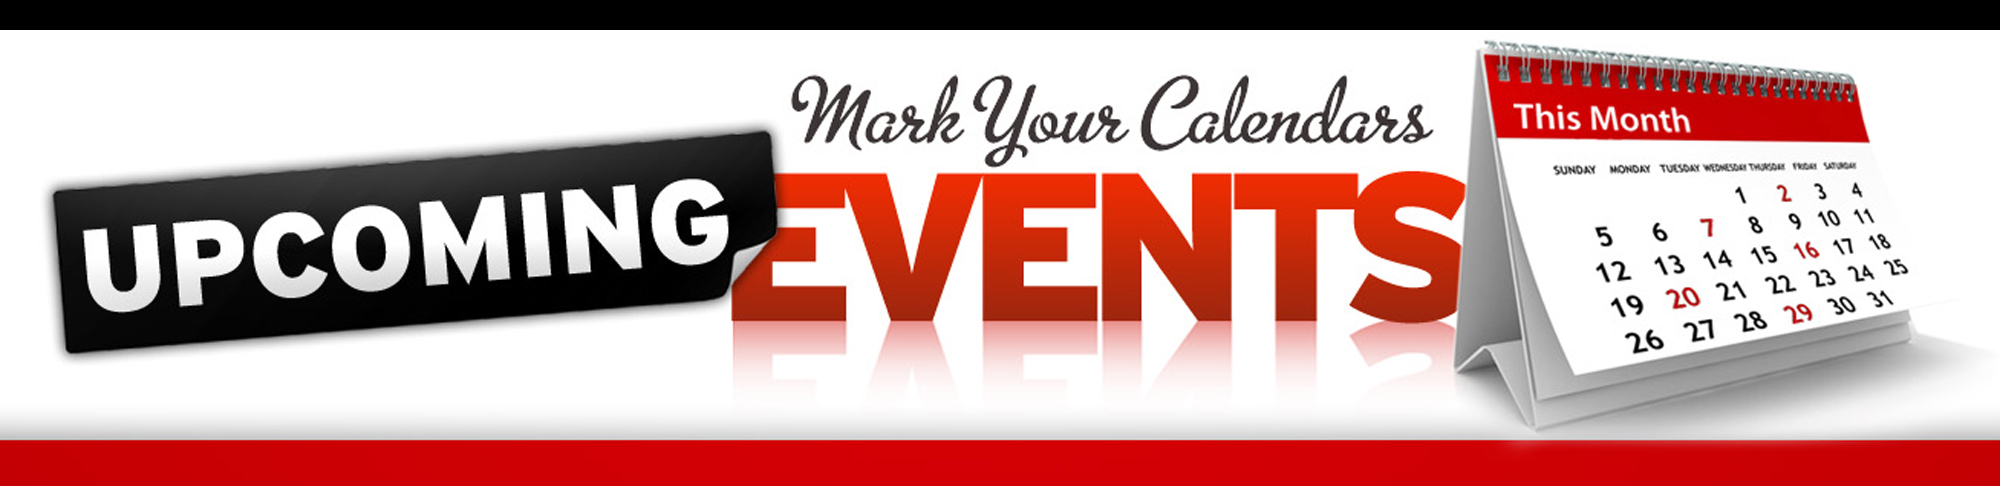 Mark your calender events. Announcements clipart upcoming event